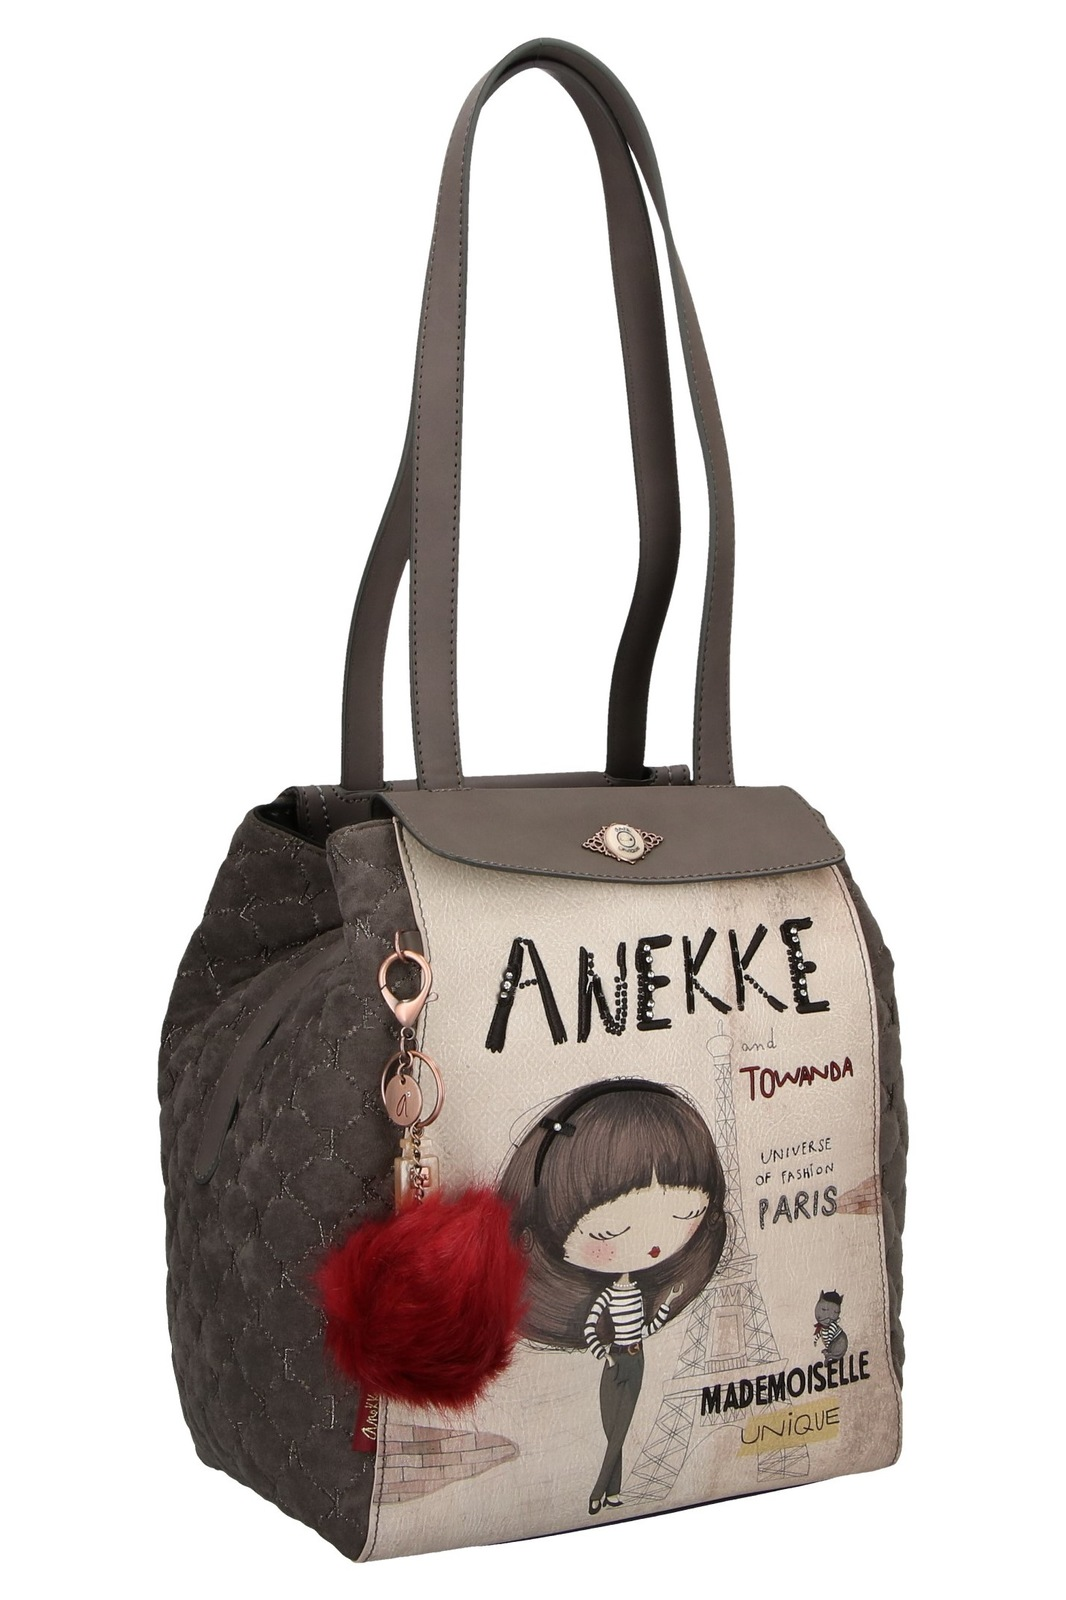 Anekke torbica Couture Mademoiselle